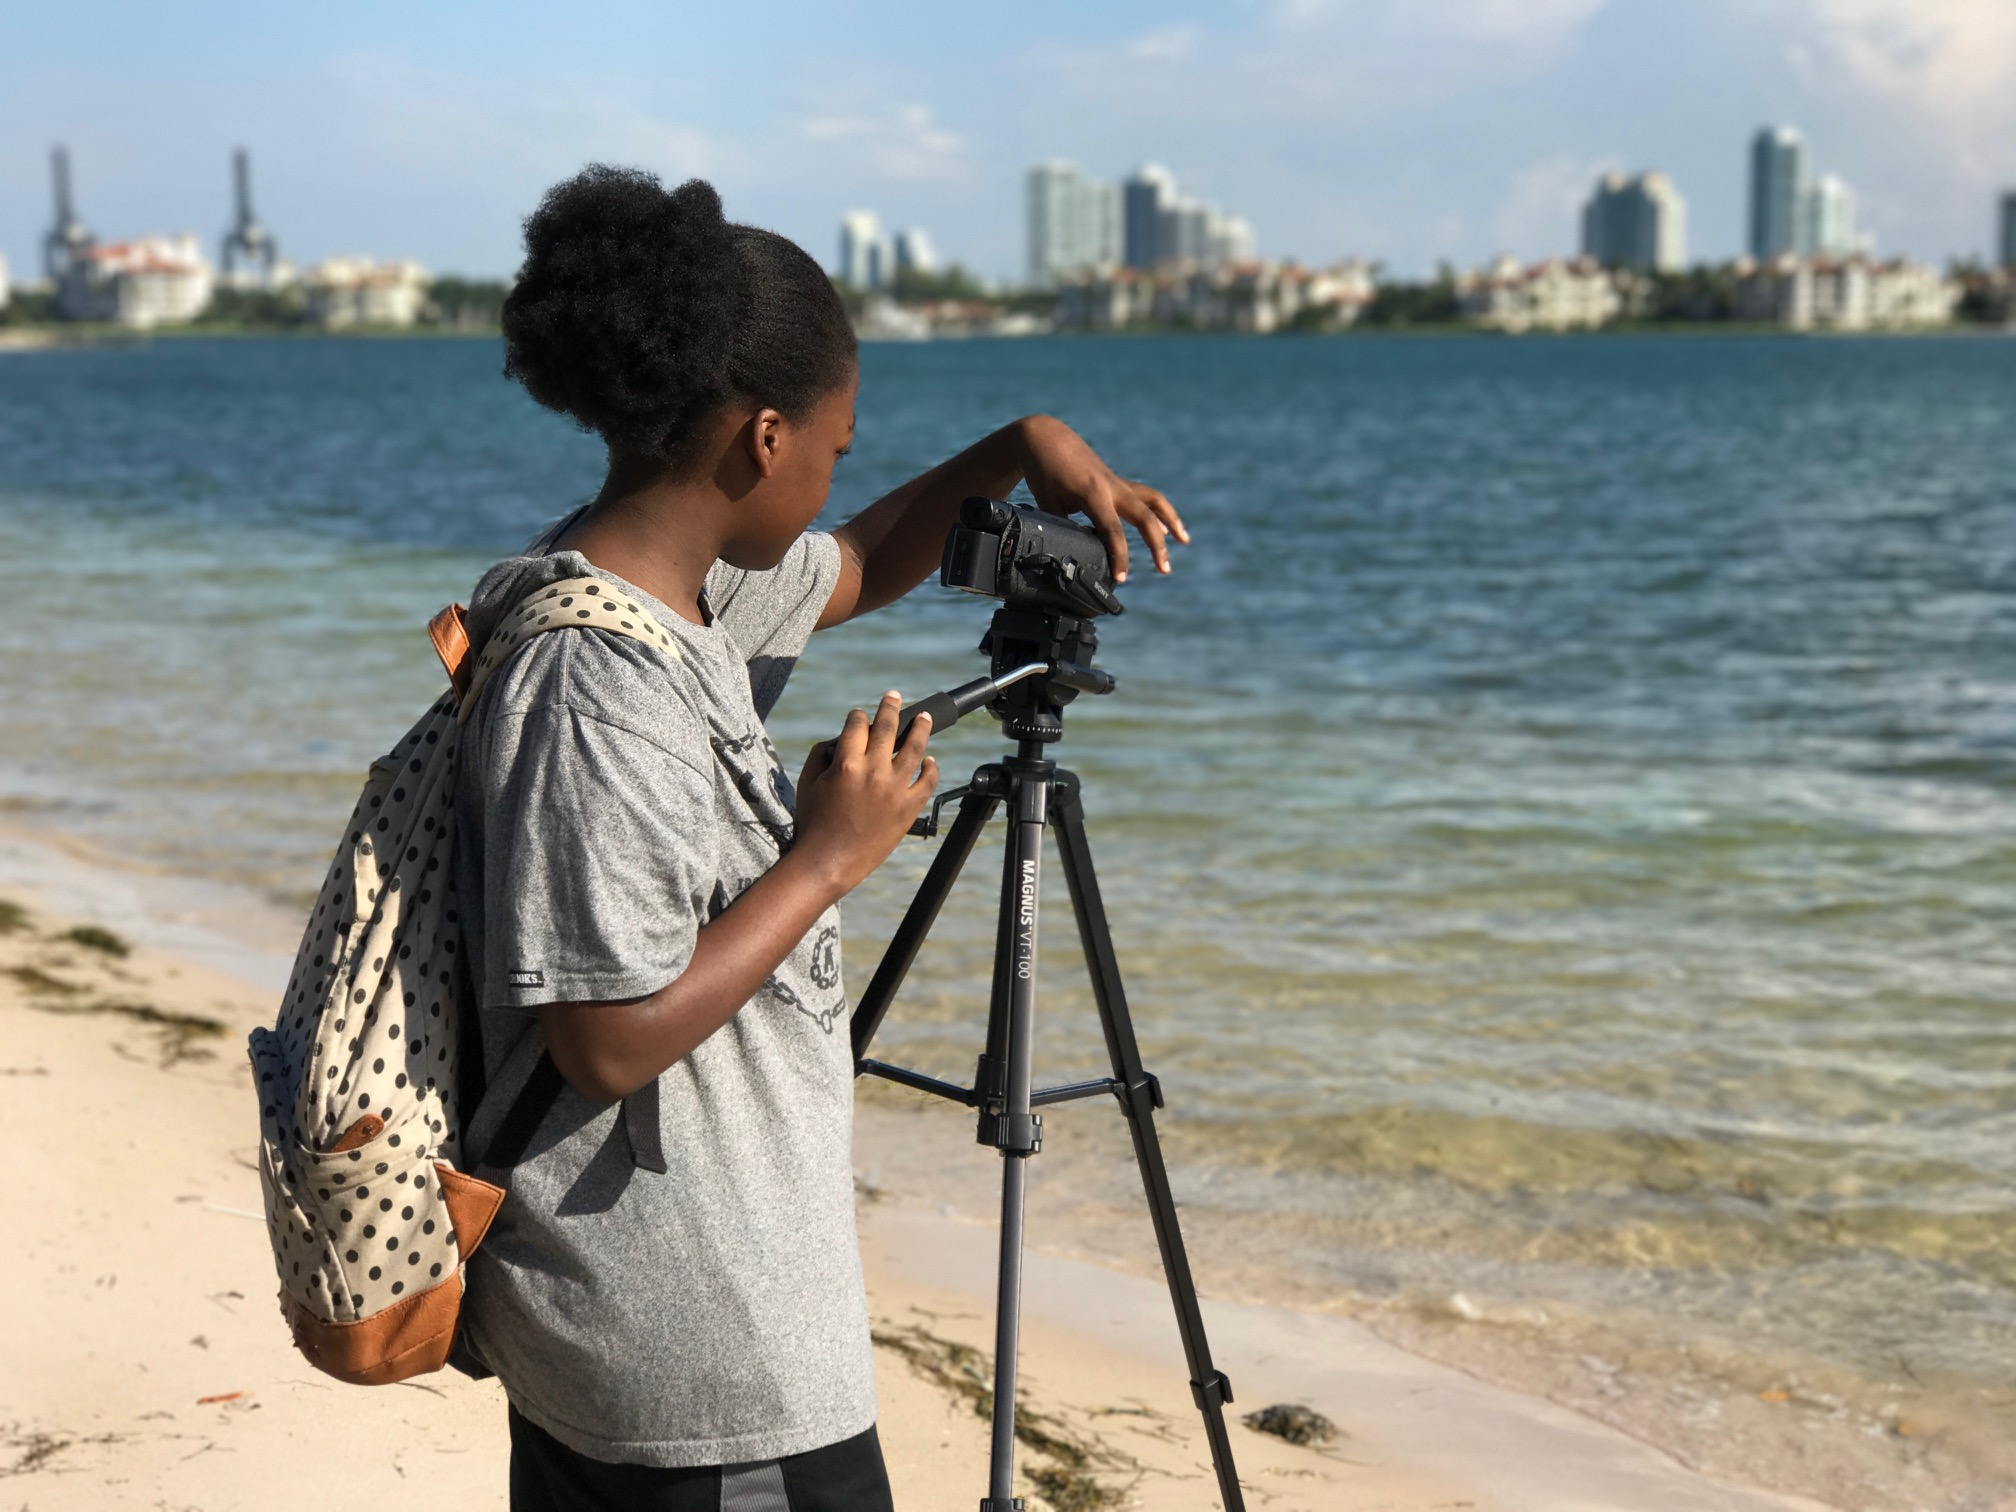 Young student operating a camera in front of the water